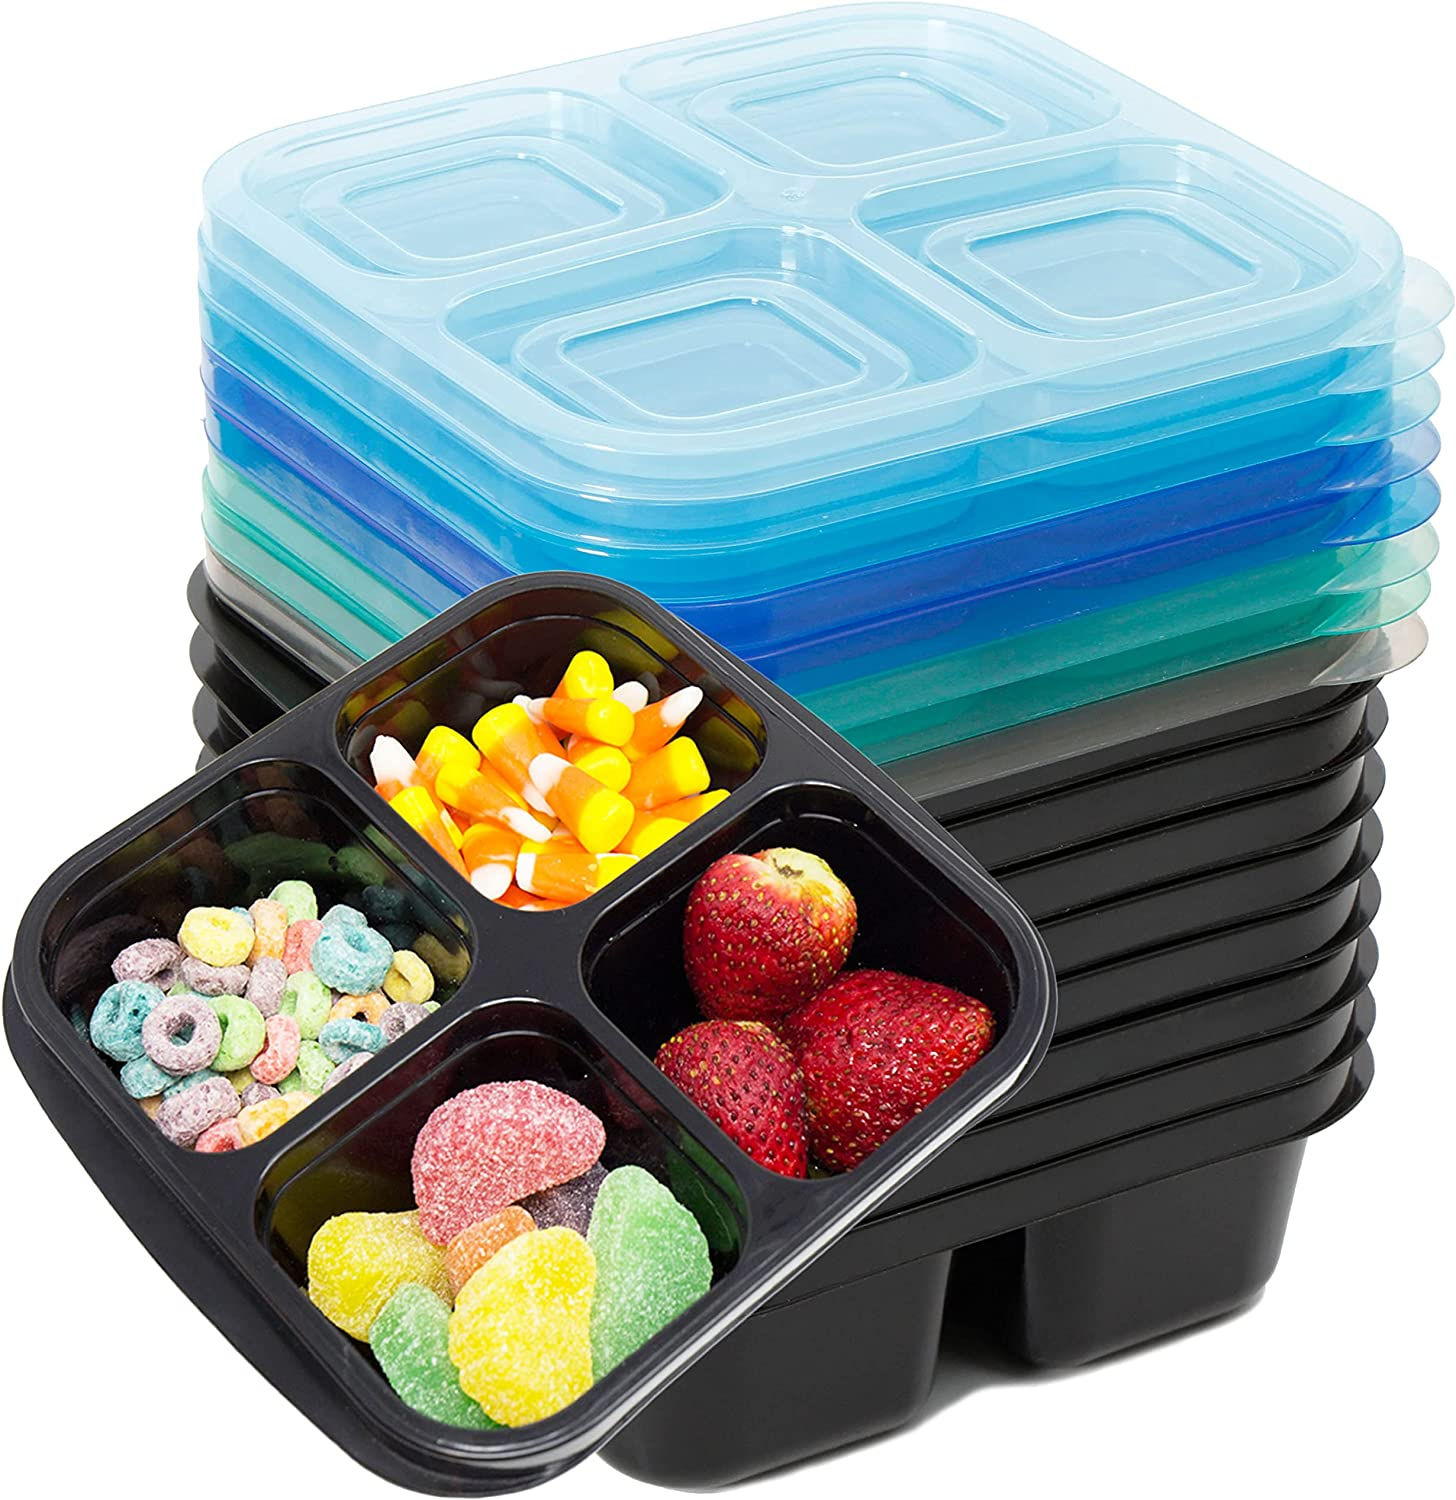 Youngever 8 Sets 4-Compartment Reusable Snack Box Food Containers, Bento Lunch Box, Meal Prep Containers, Divided Food Storage Containers, in 8 Coastal Colors